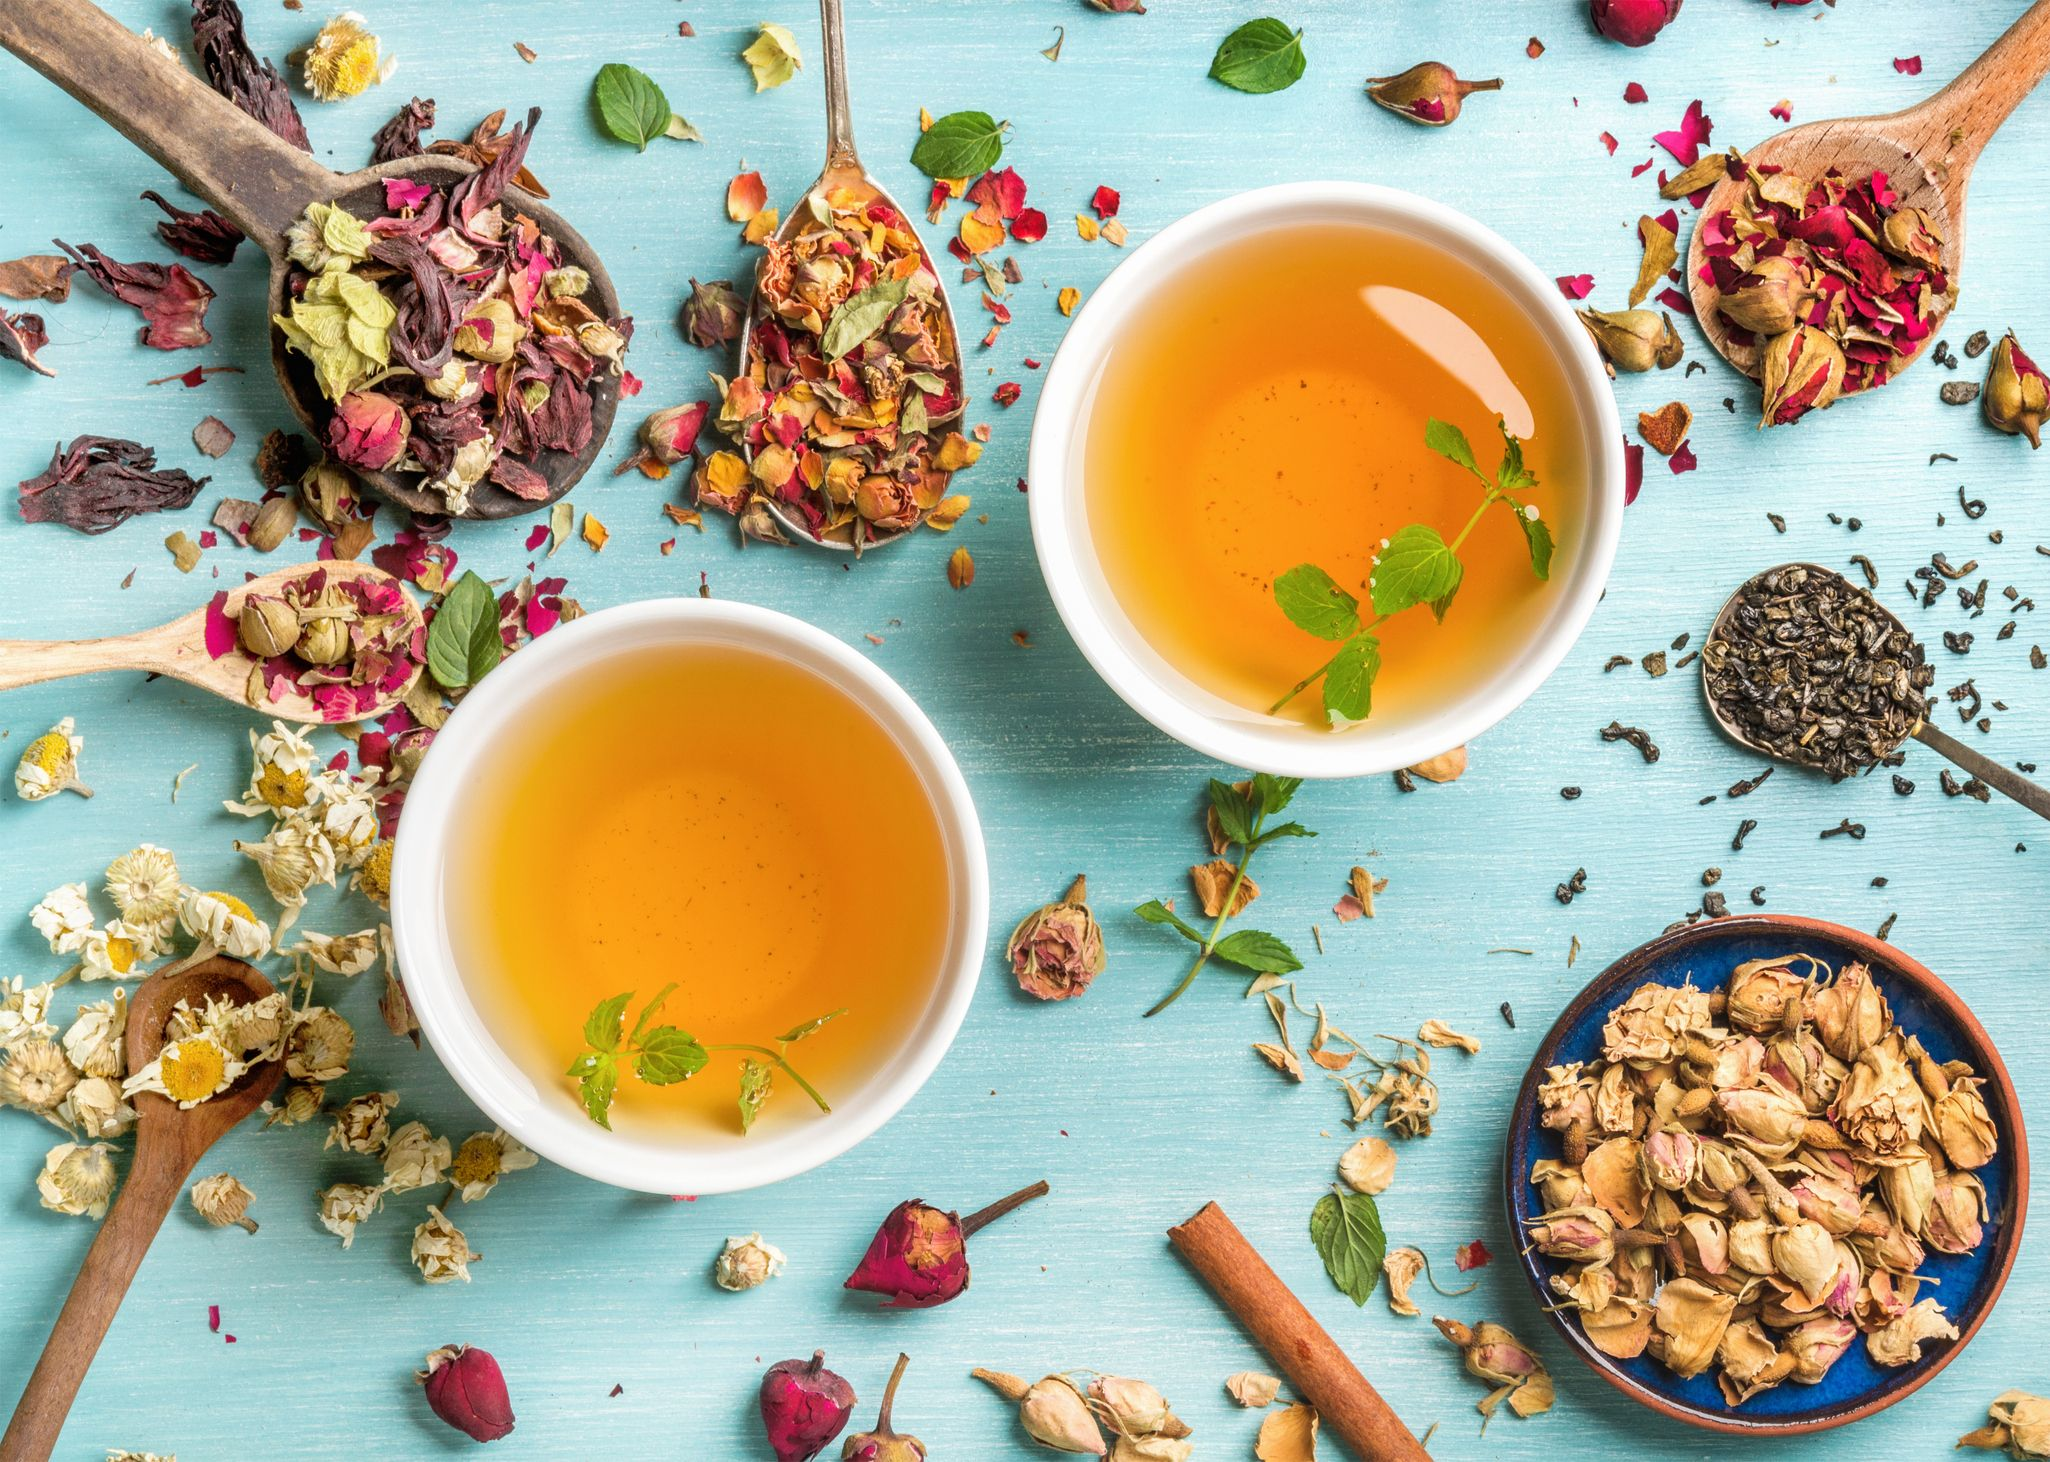 Why Detox Teas Don't Work for Weight Loss - The Side Effects of Tea Cleanses